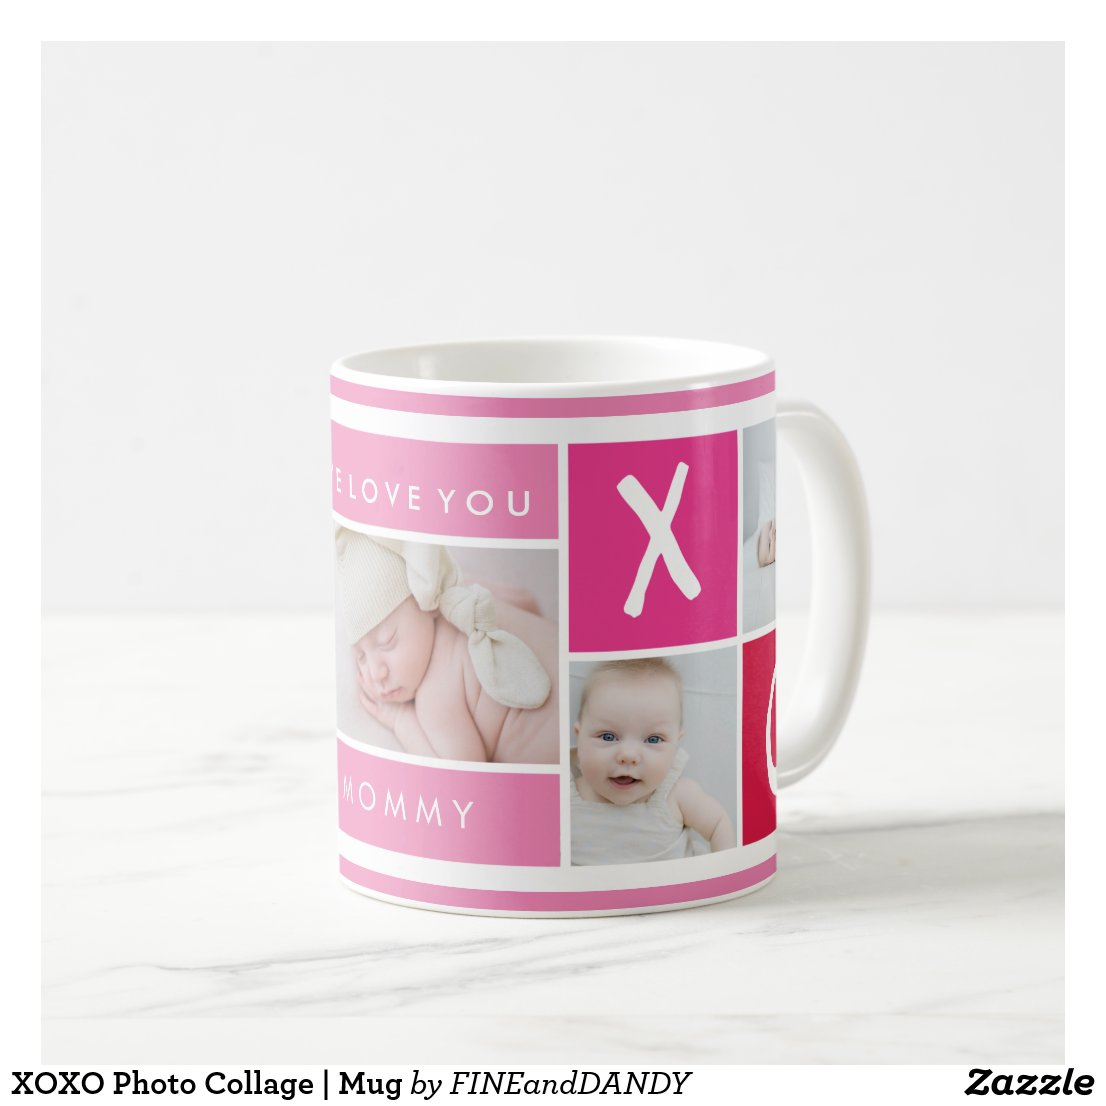 XOXO Photo Collage | Mug